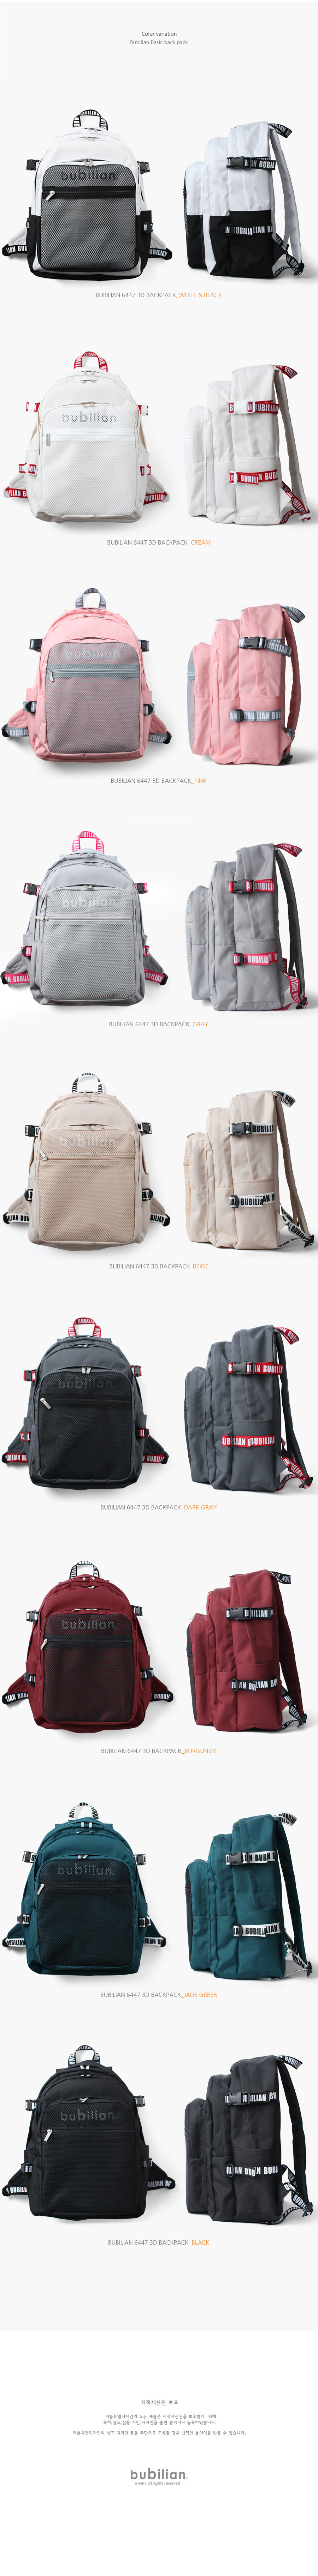 [키홀더 포함] bubilian 6447 3D backpack_beige